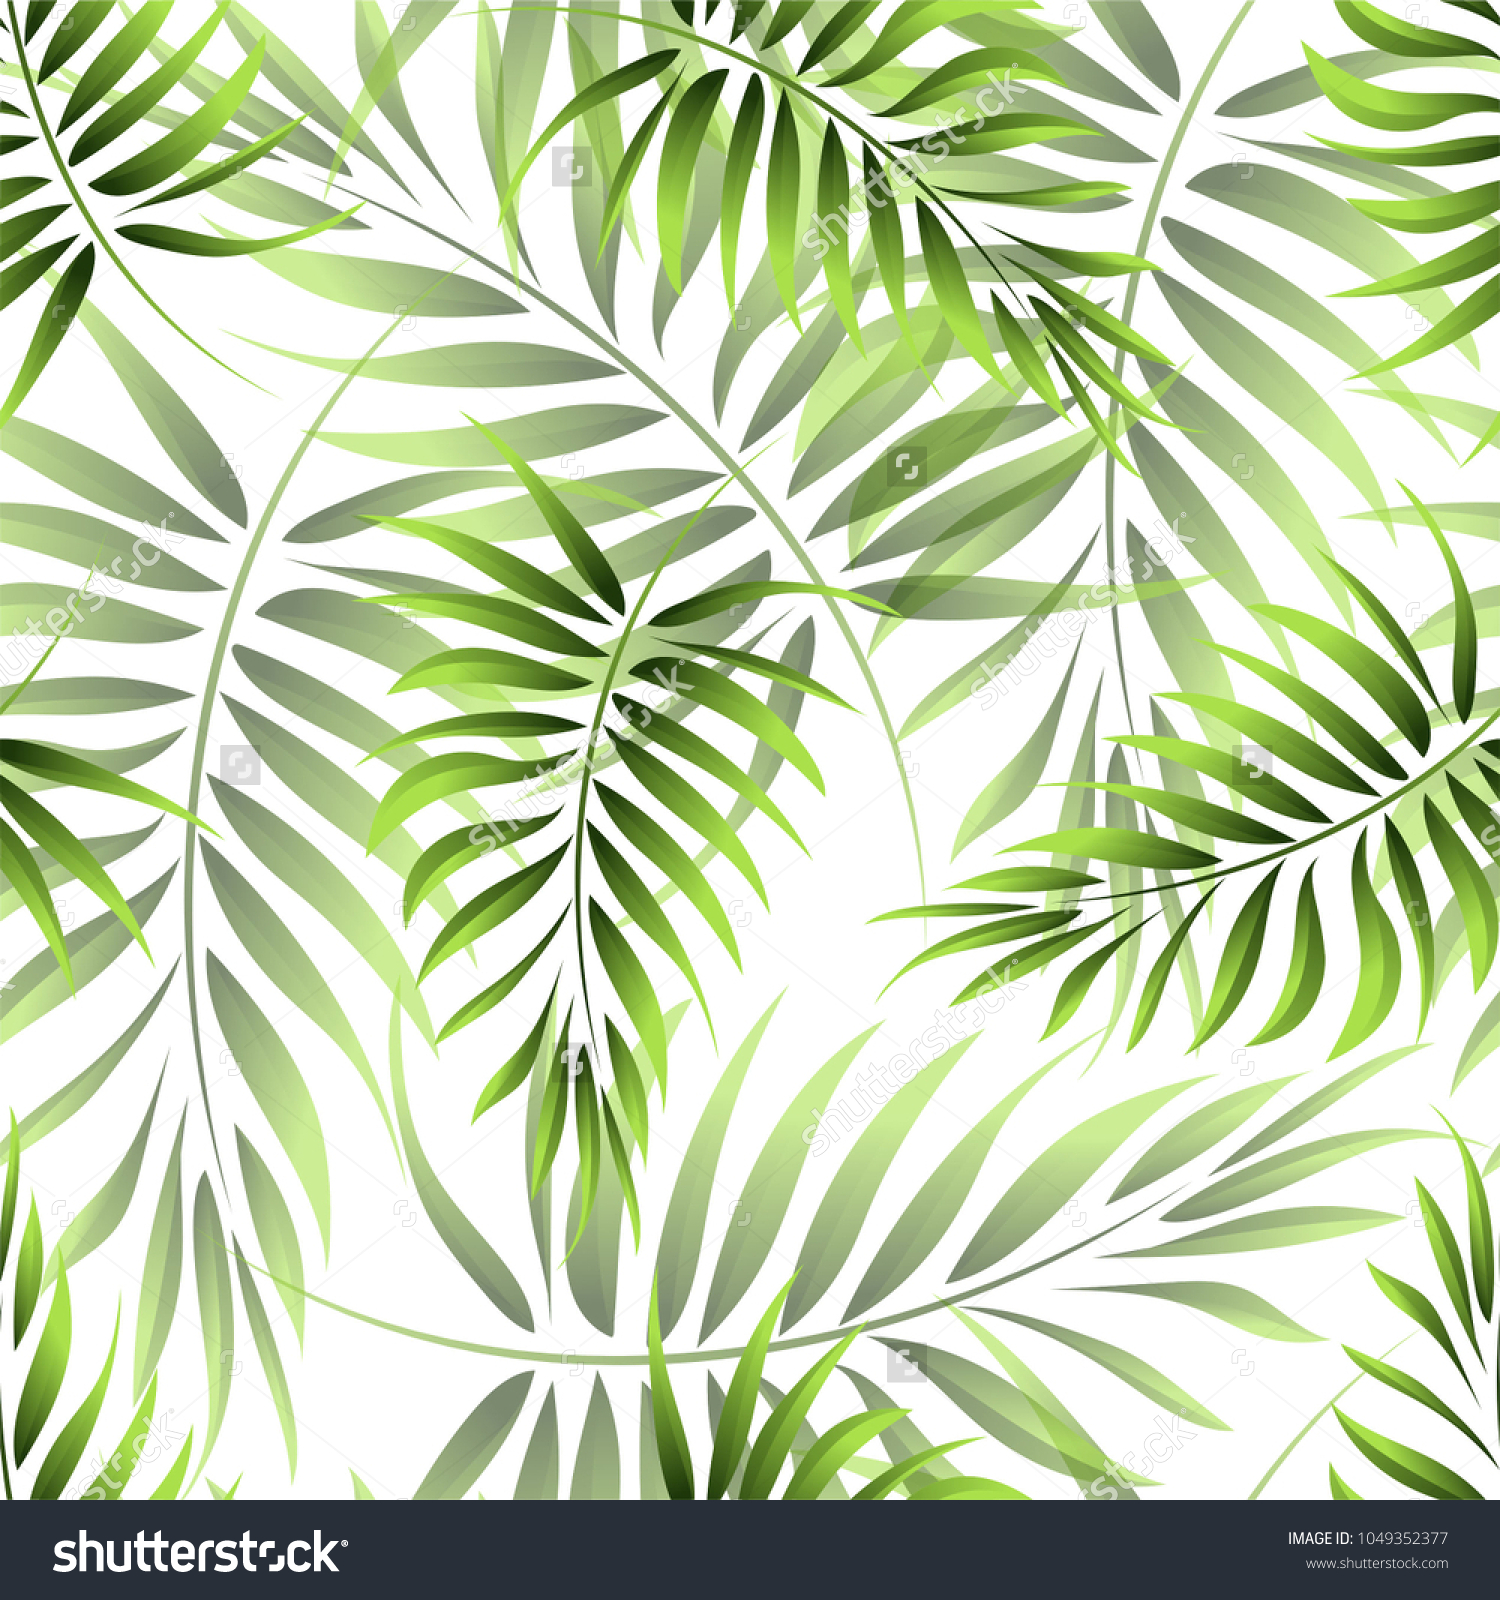 tropical pattern with large green monstera leaves on white